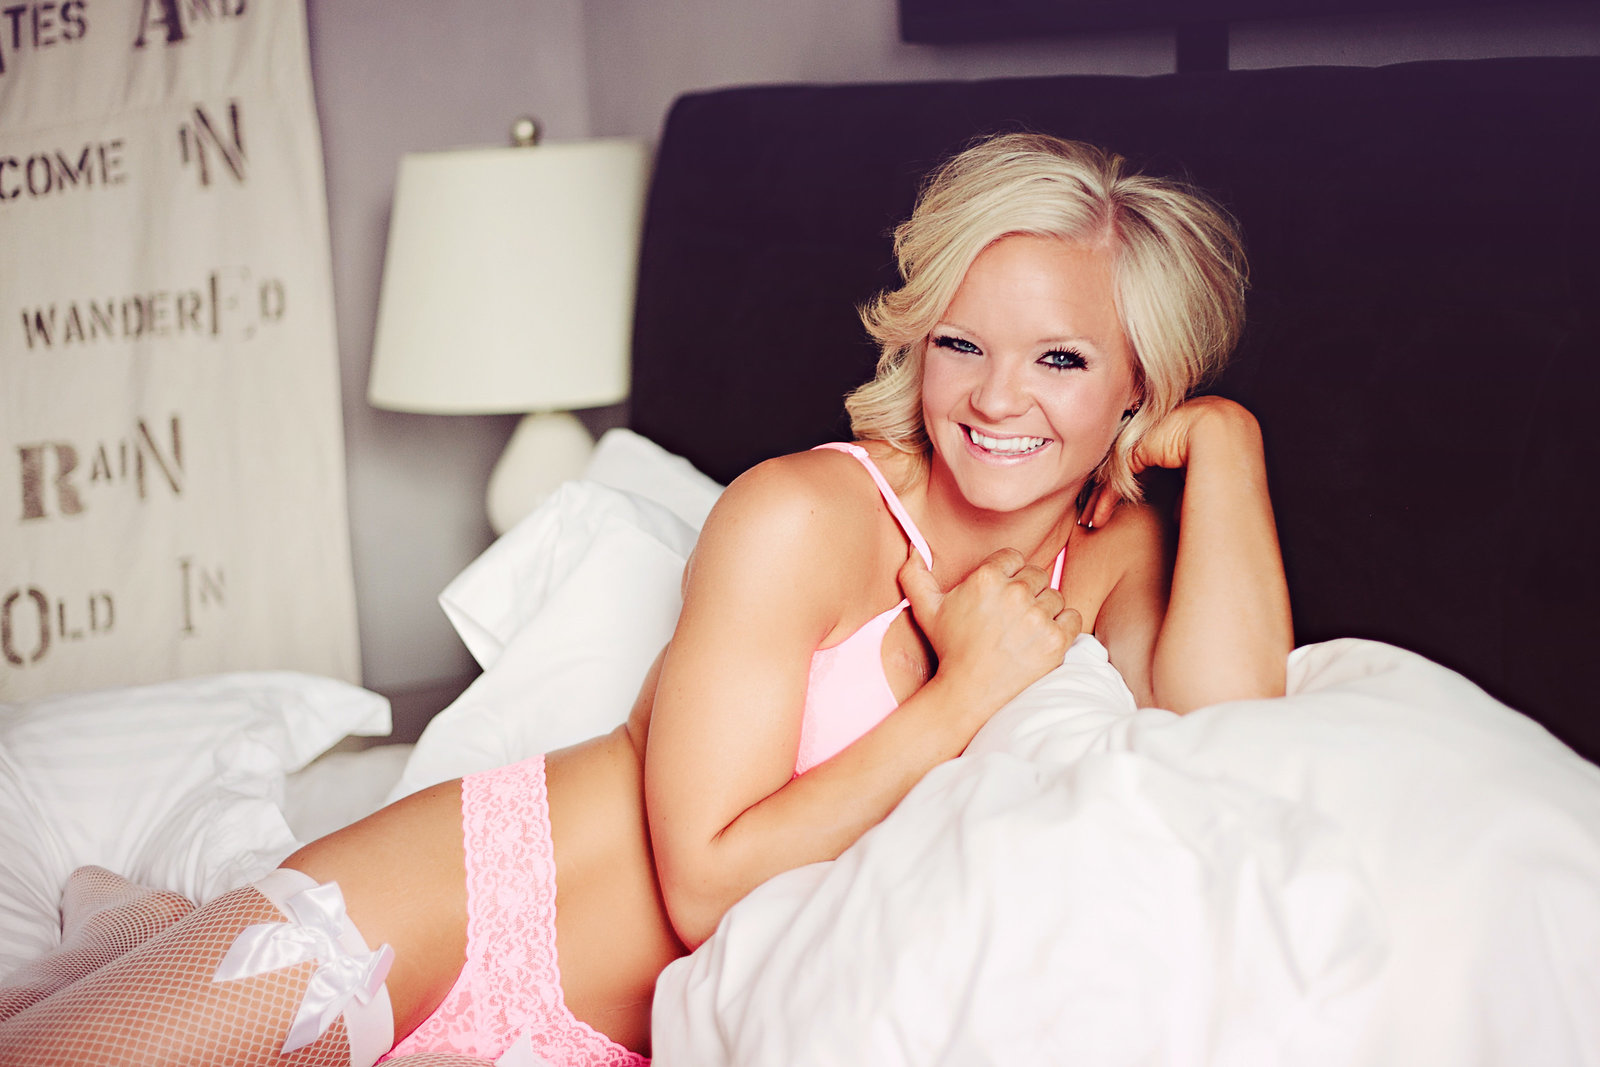 Missoula MT Boudoir Photos Laughing in Pink Lingerie